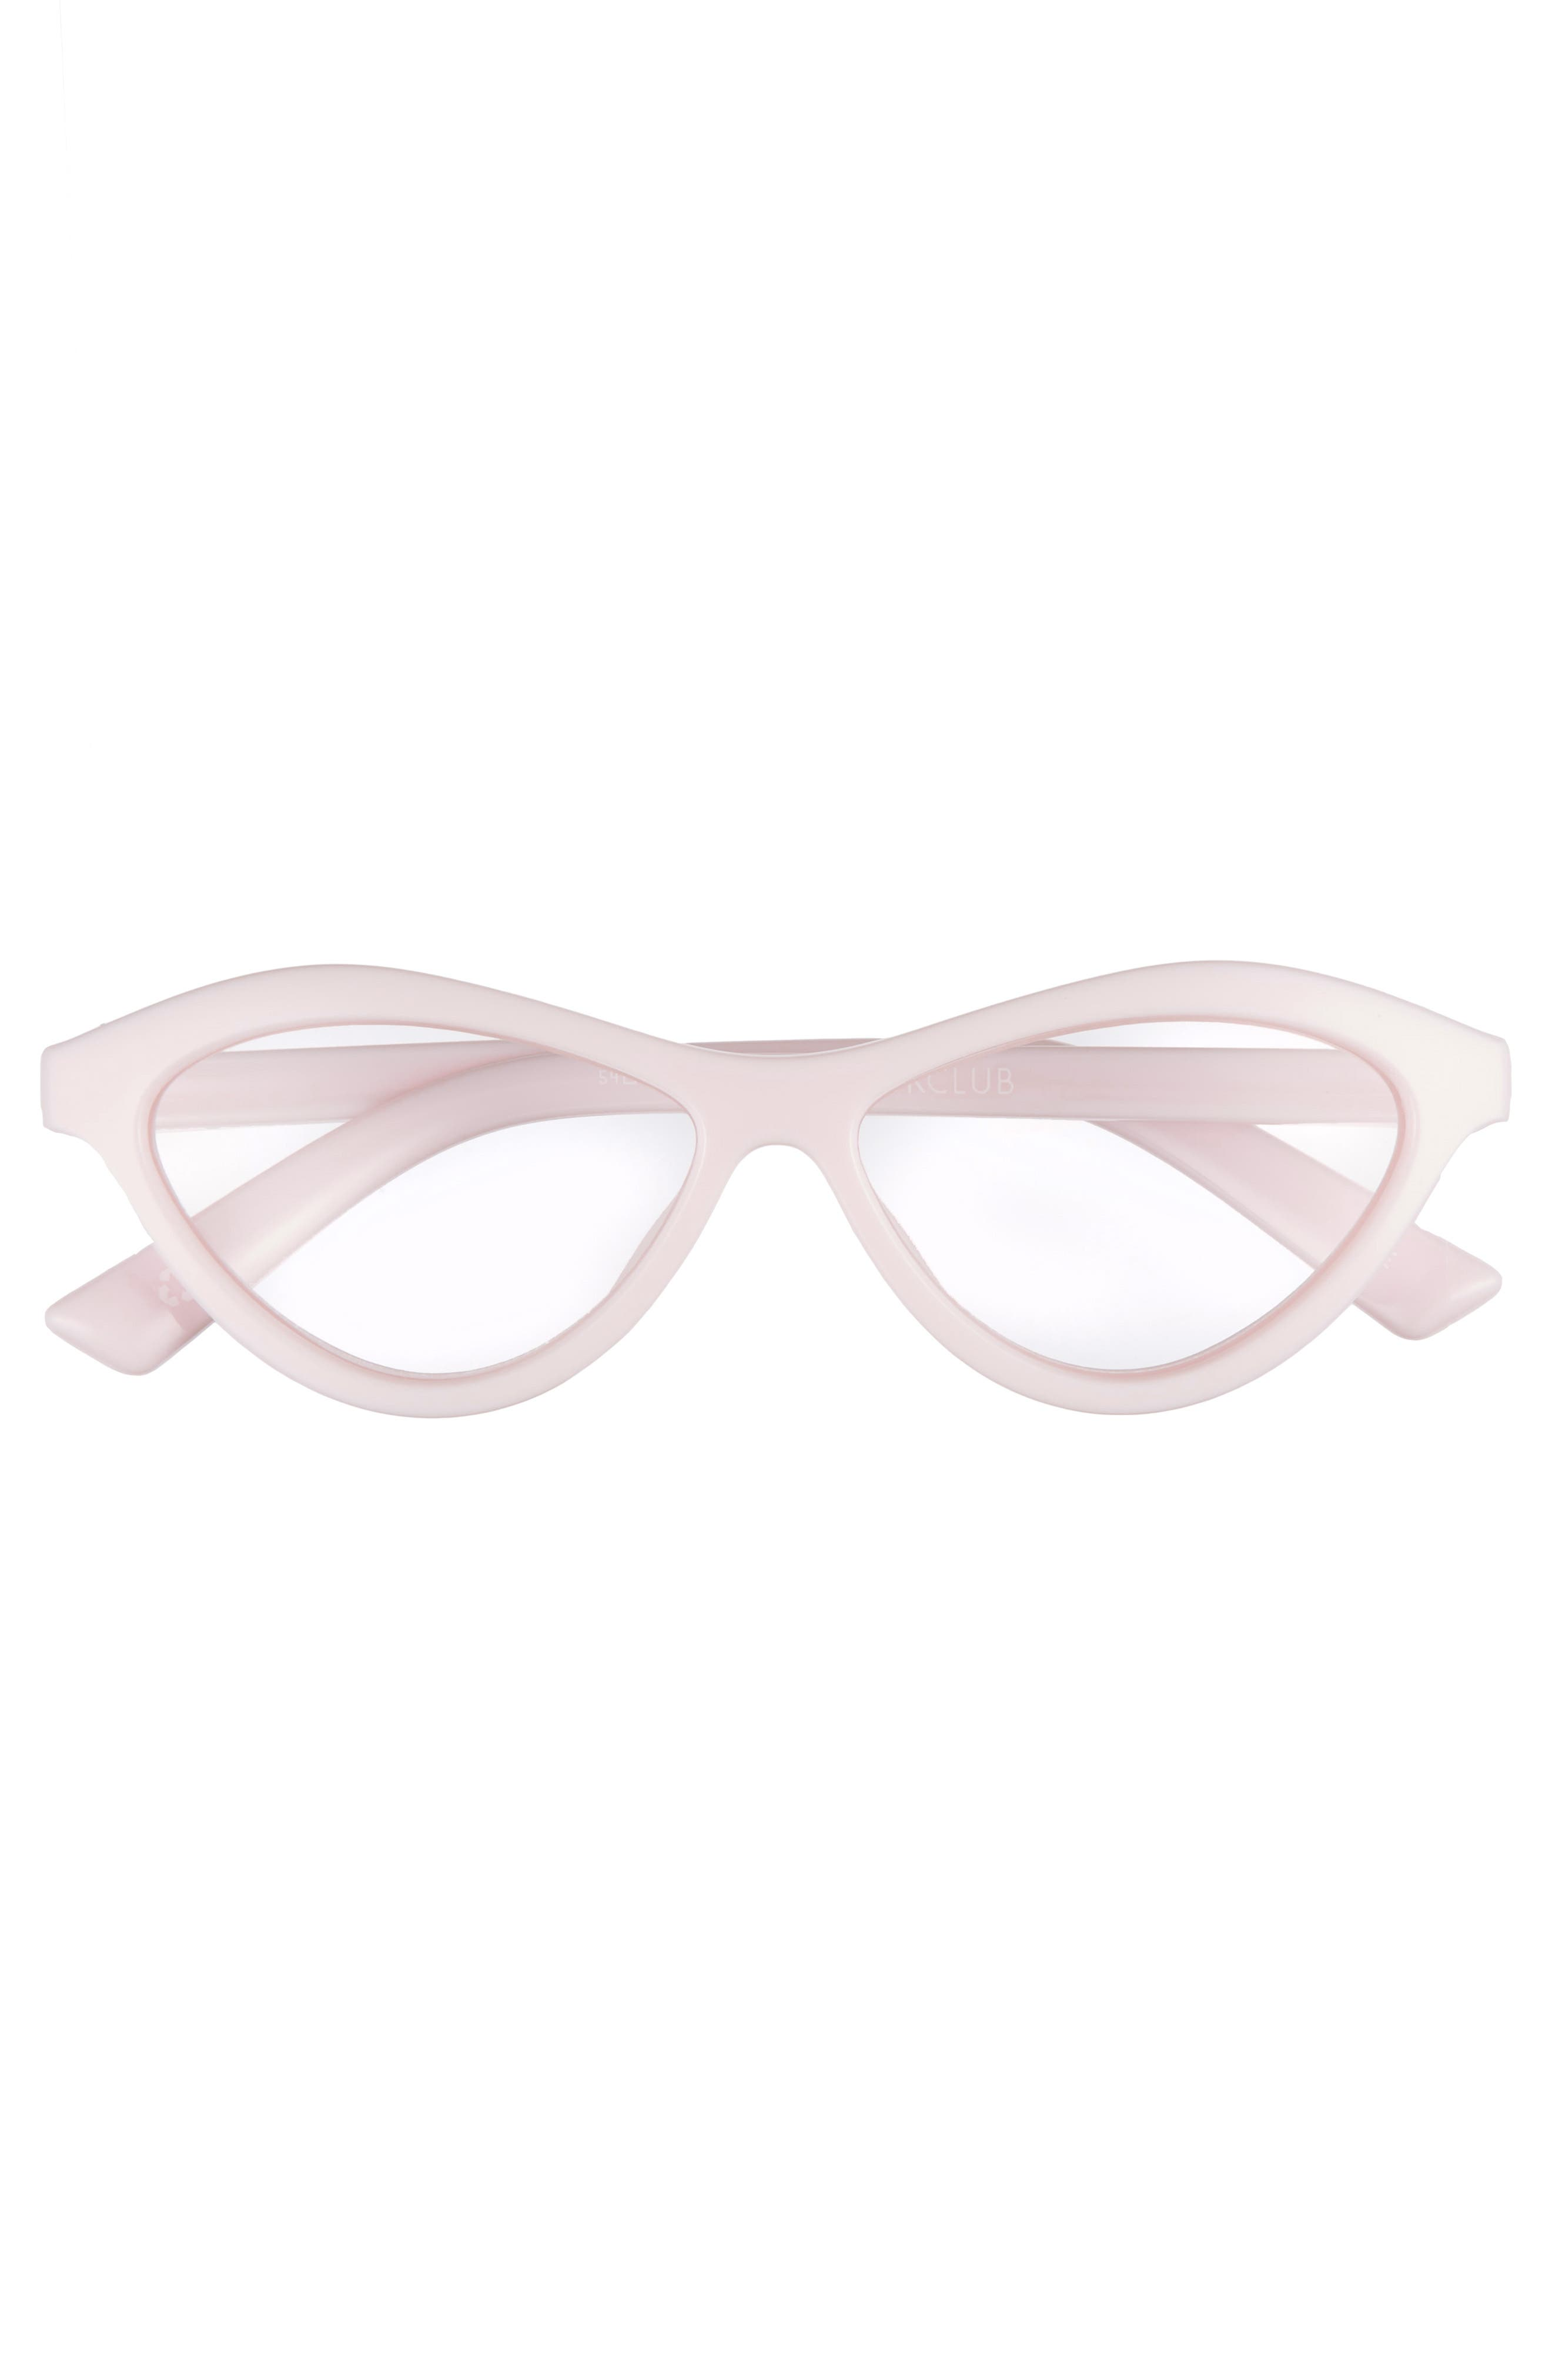 Fifty Fails a Day 54mm Reading Glasses,                             Alternate thumbnail 3, color,                             POWDER PINK